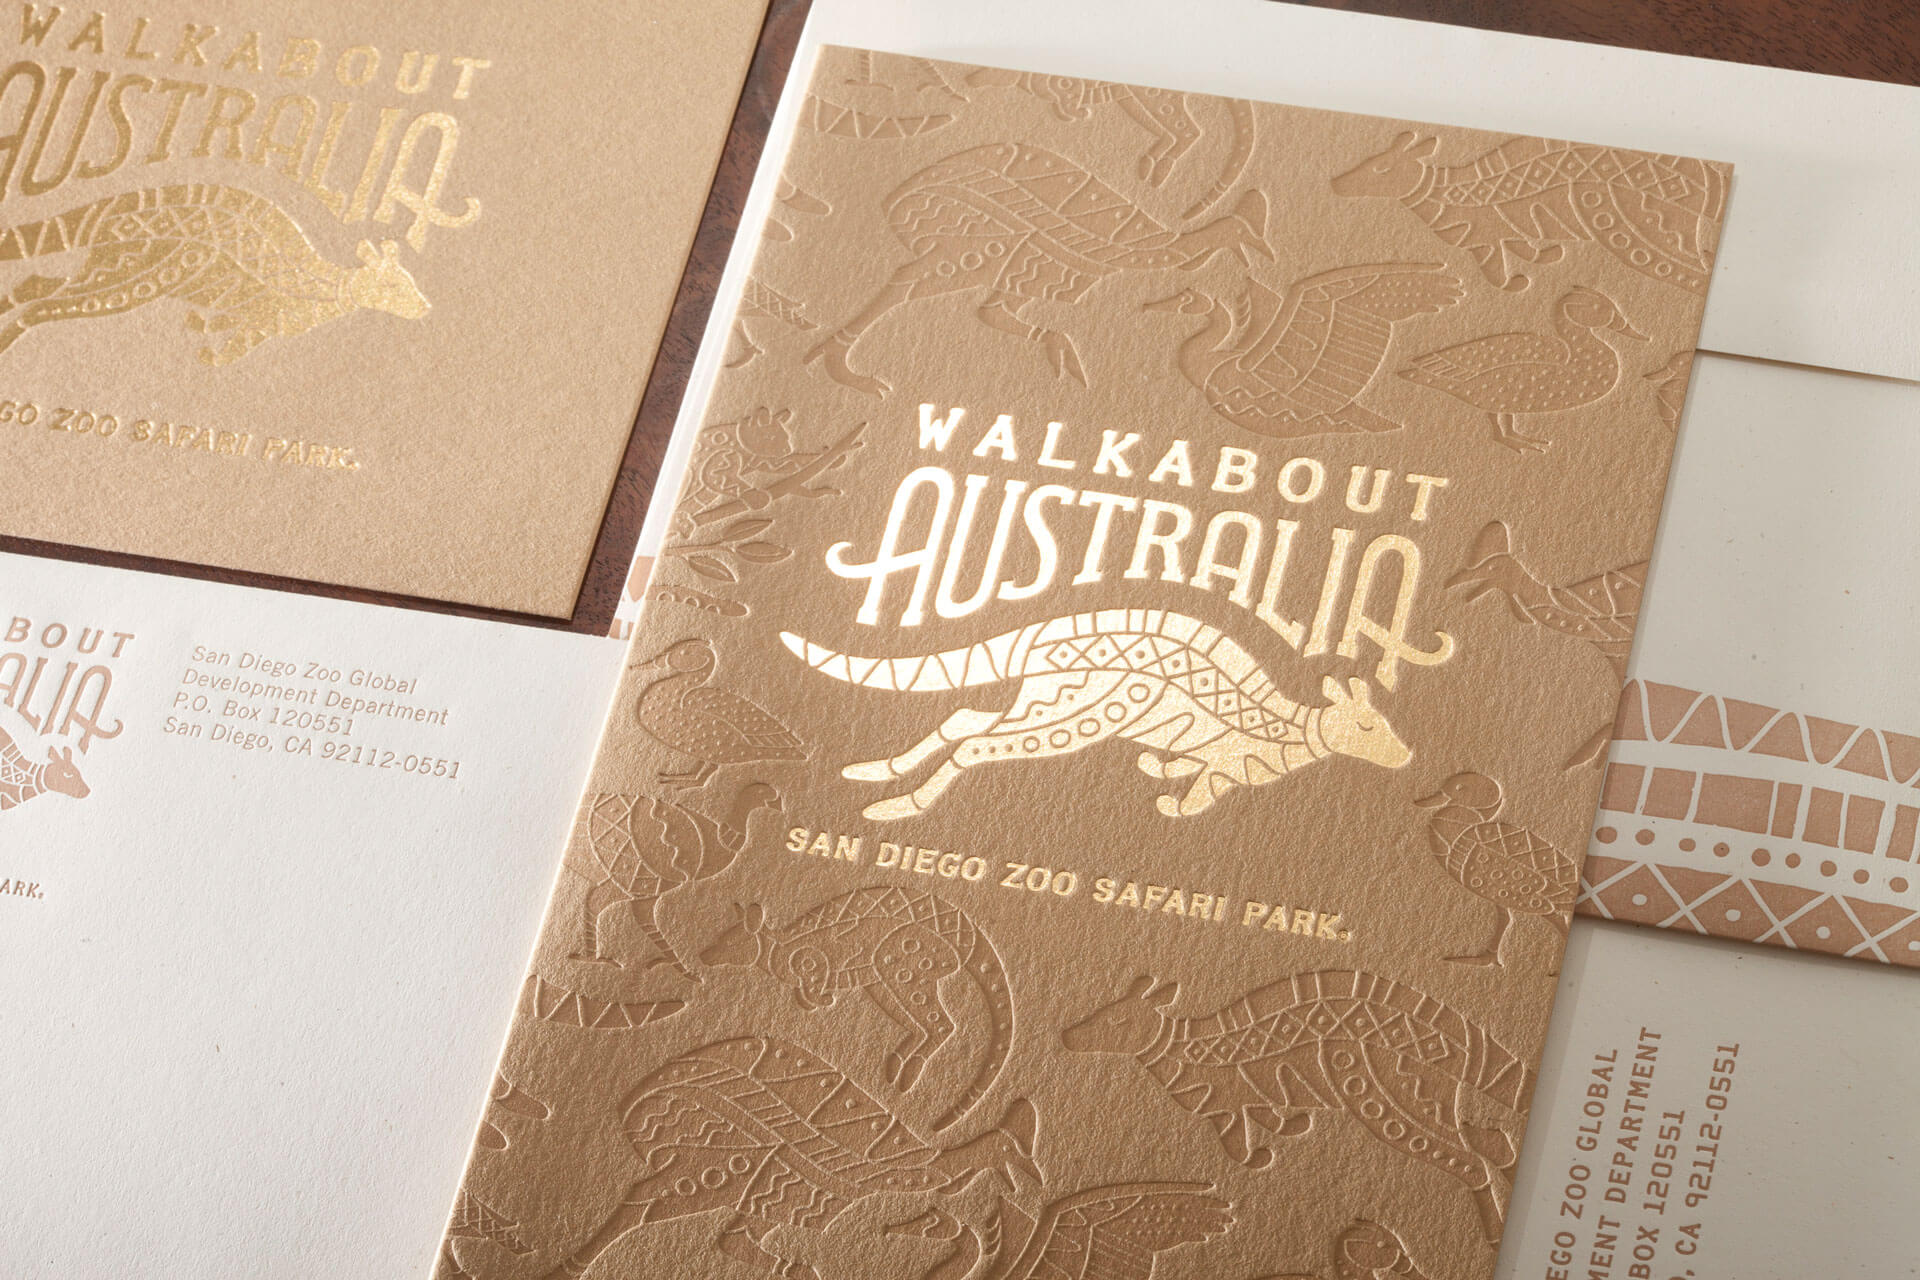 Walkabout Australia Opening Invitation Package